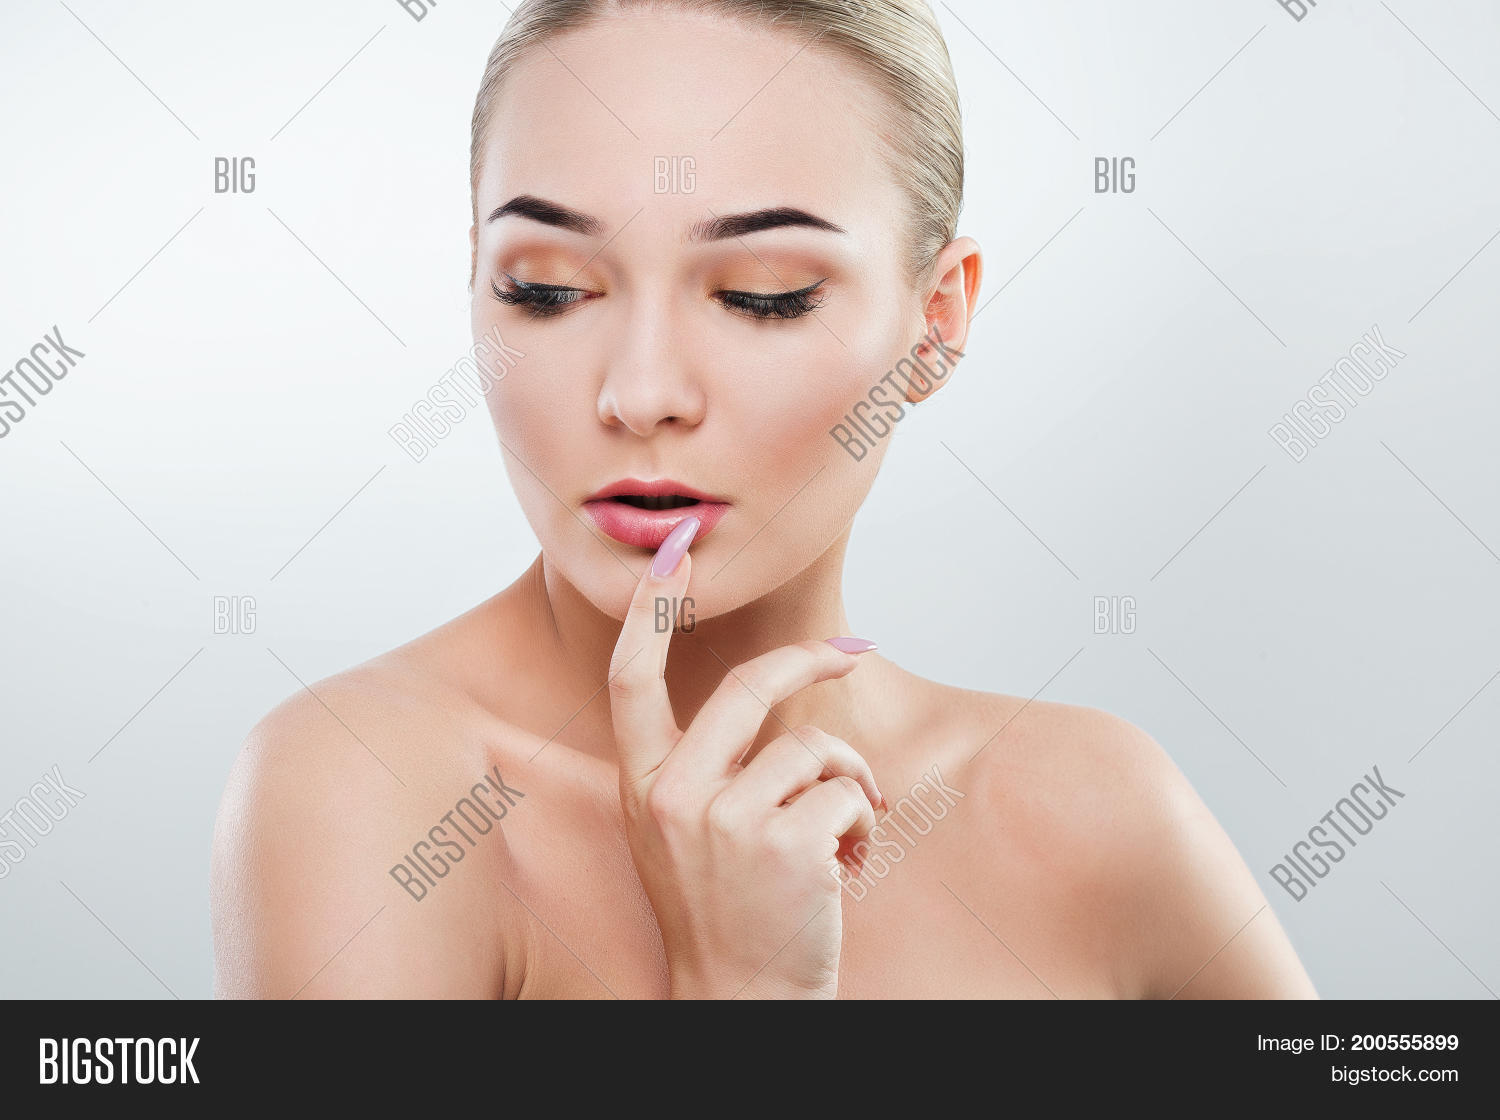 Visible, not cute naked girl mouth lips